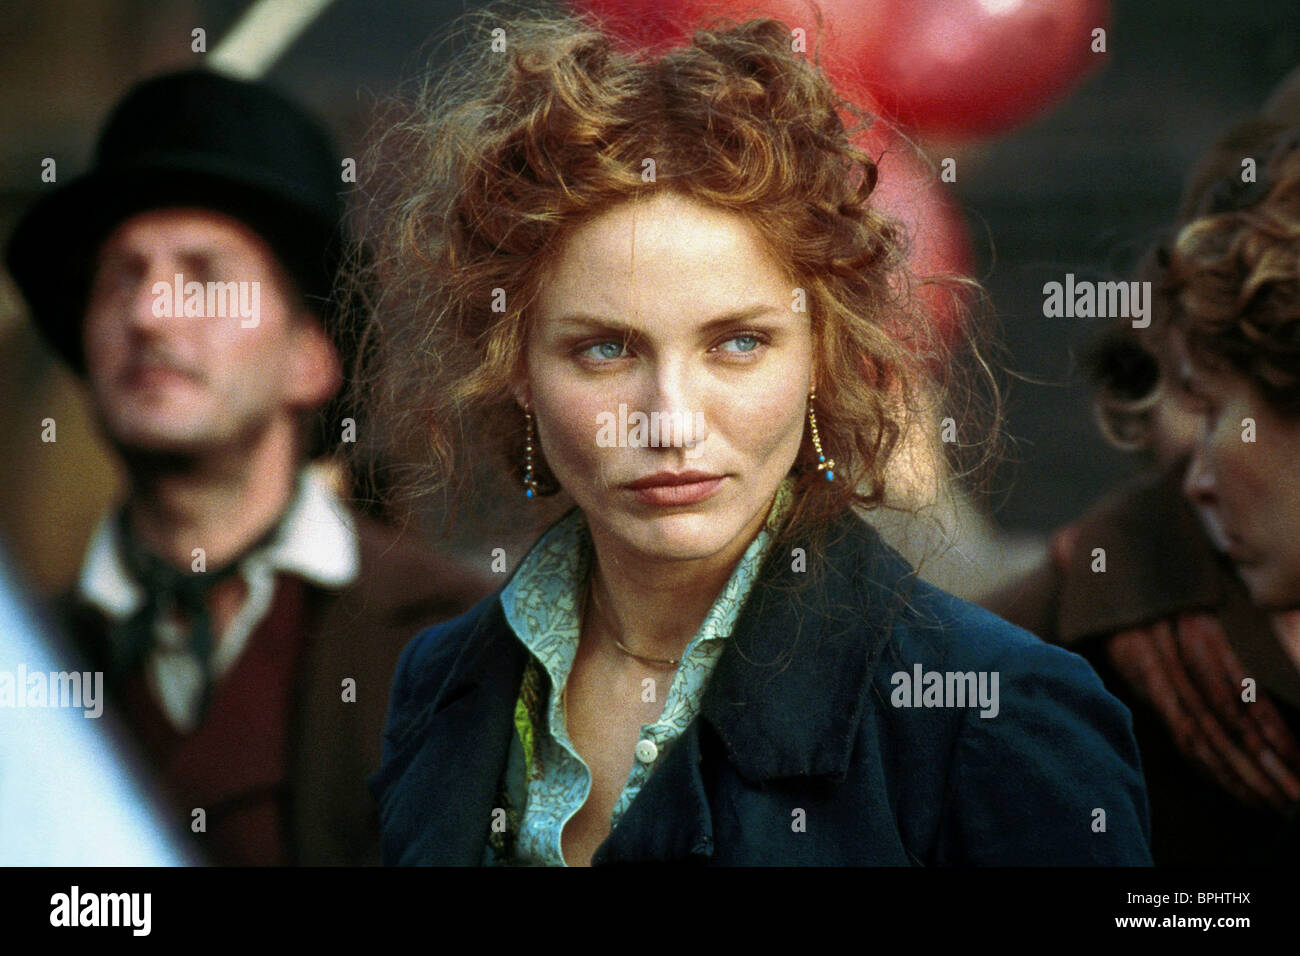 CAMERON DIAZ GANGS OF NEW YORK (2002) - Stock Image